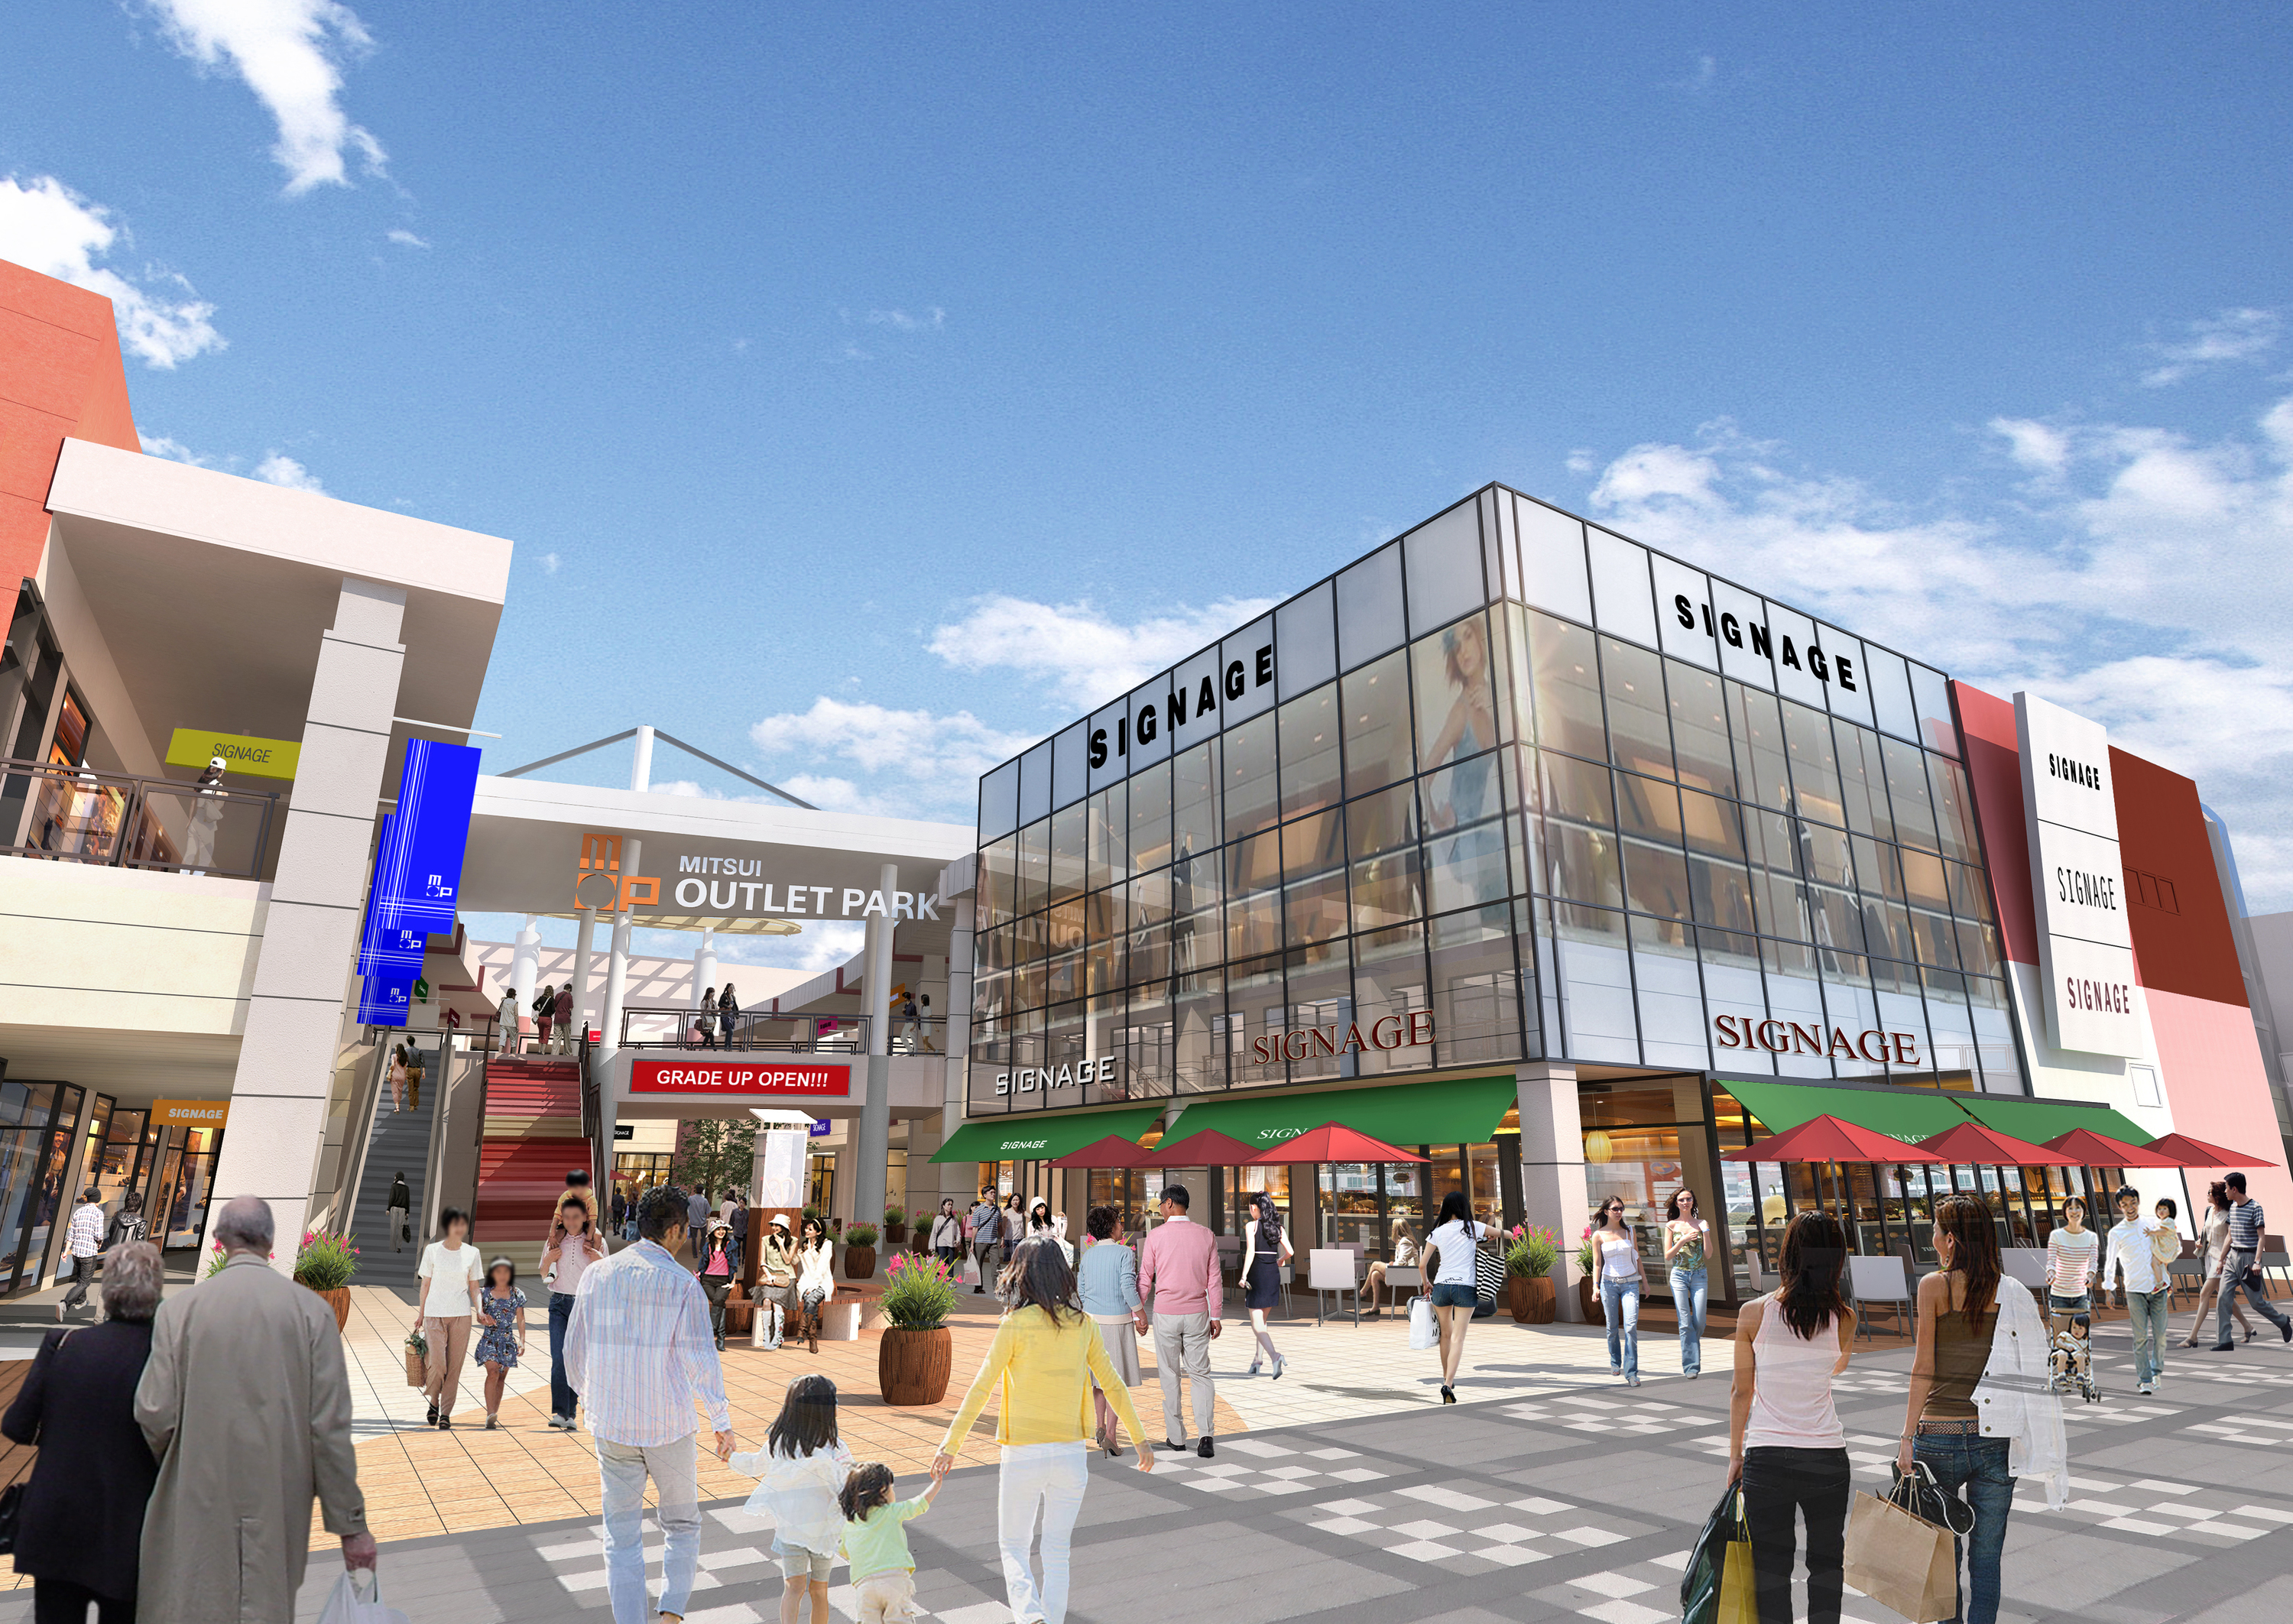 Mitsui Outlet Makuhari